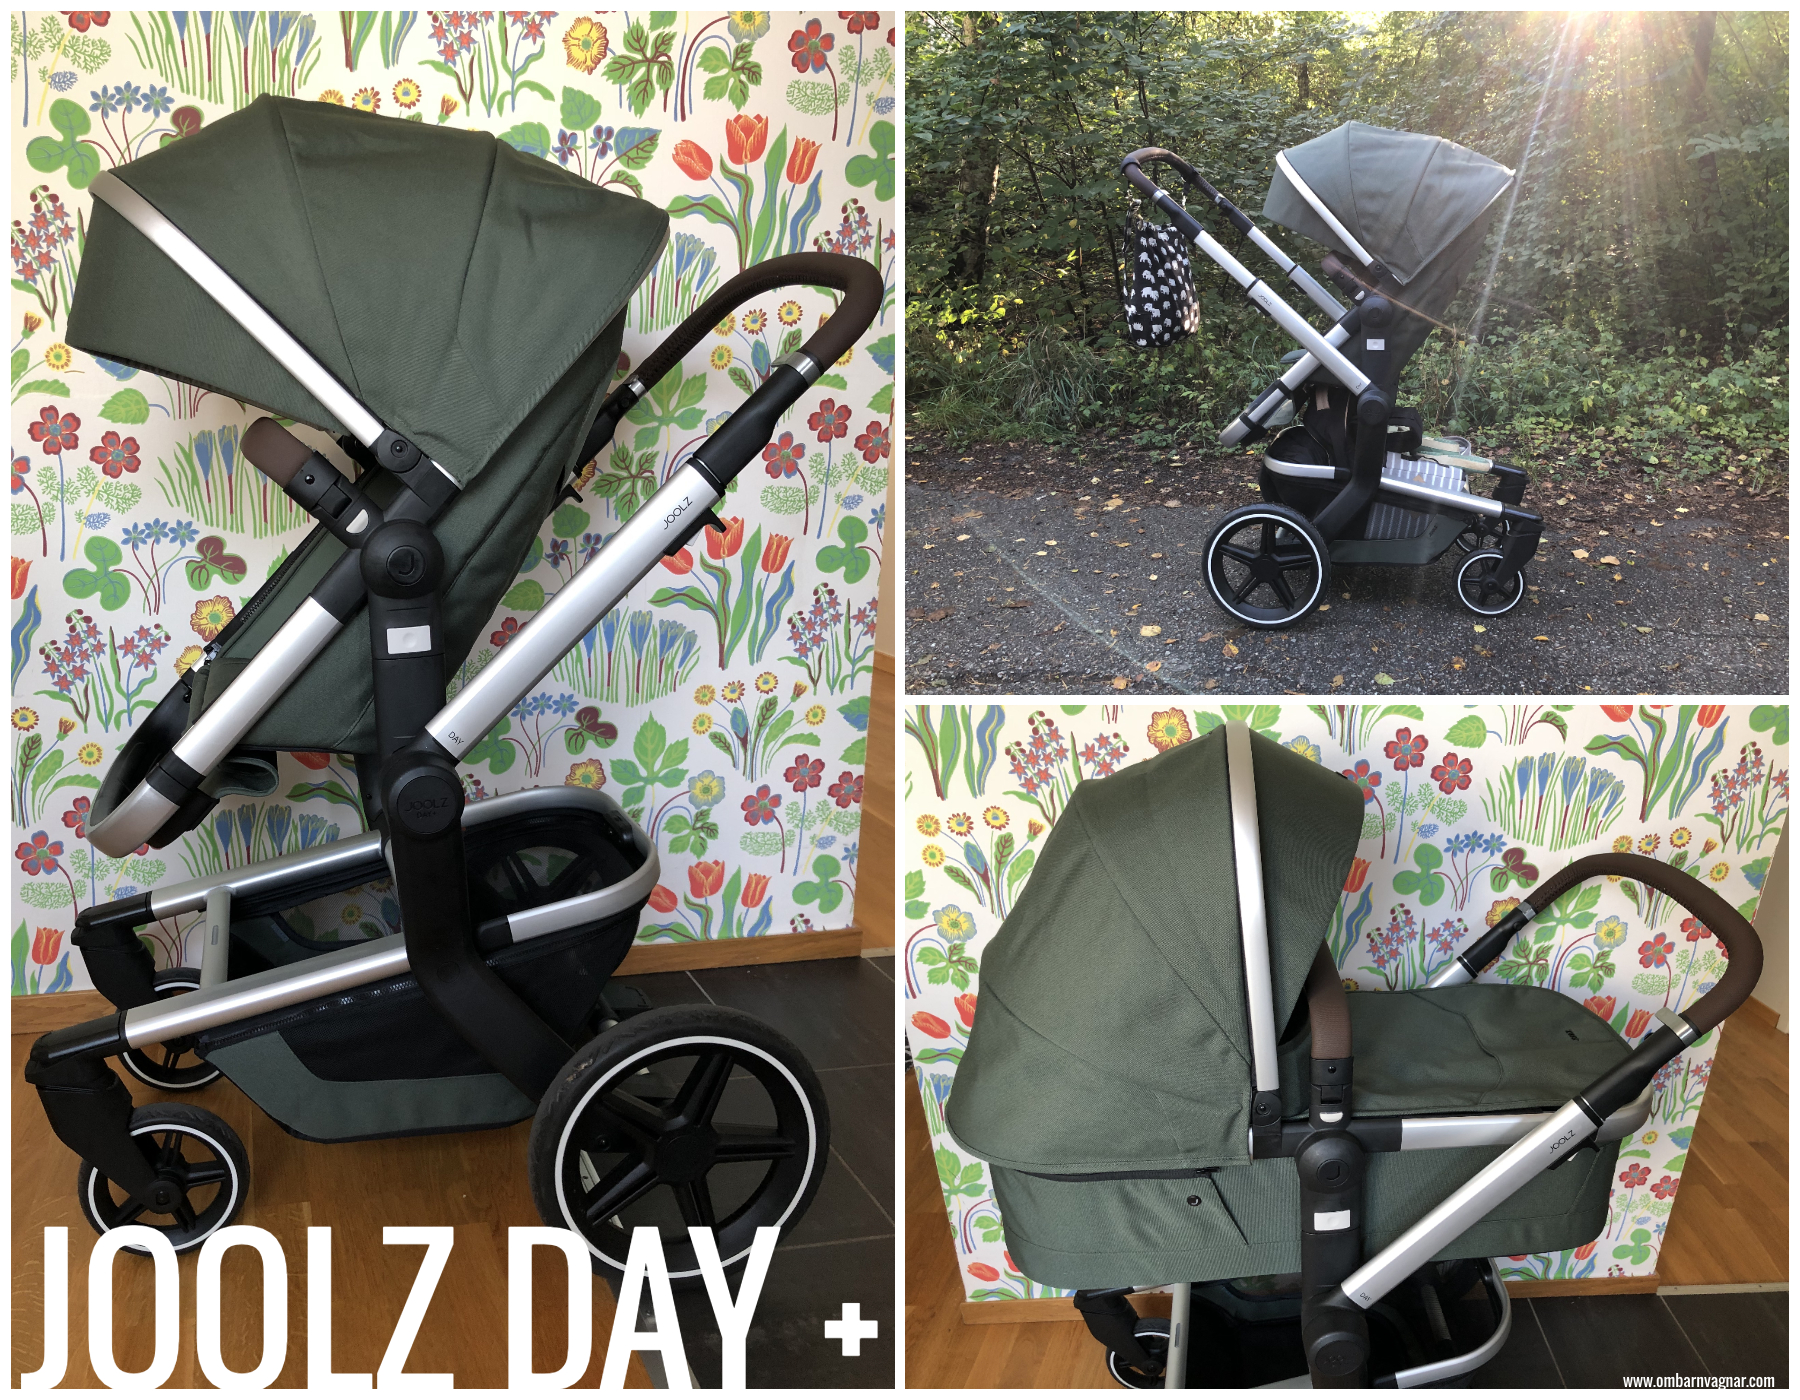 Recension av Joolz Day +